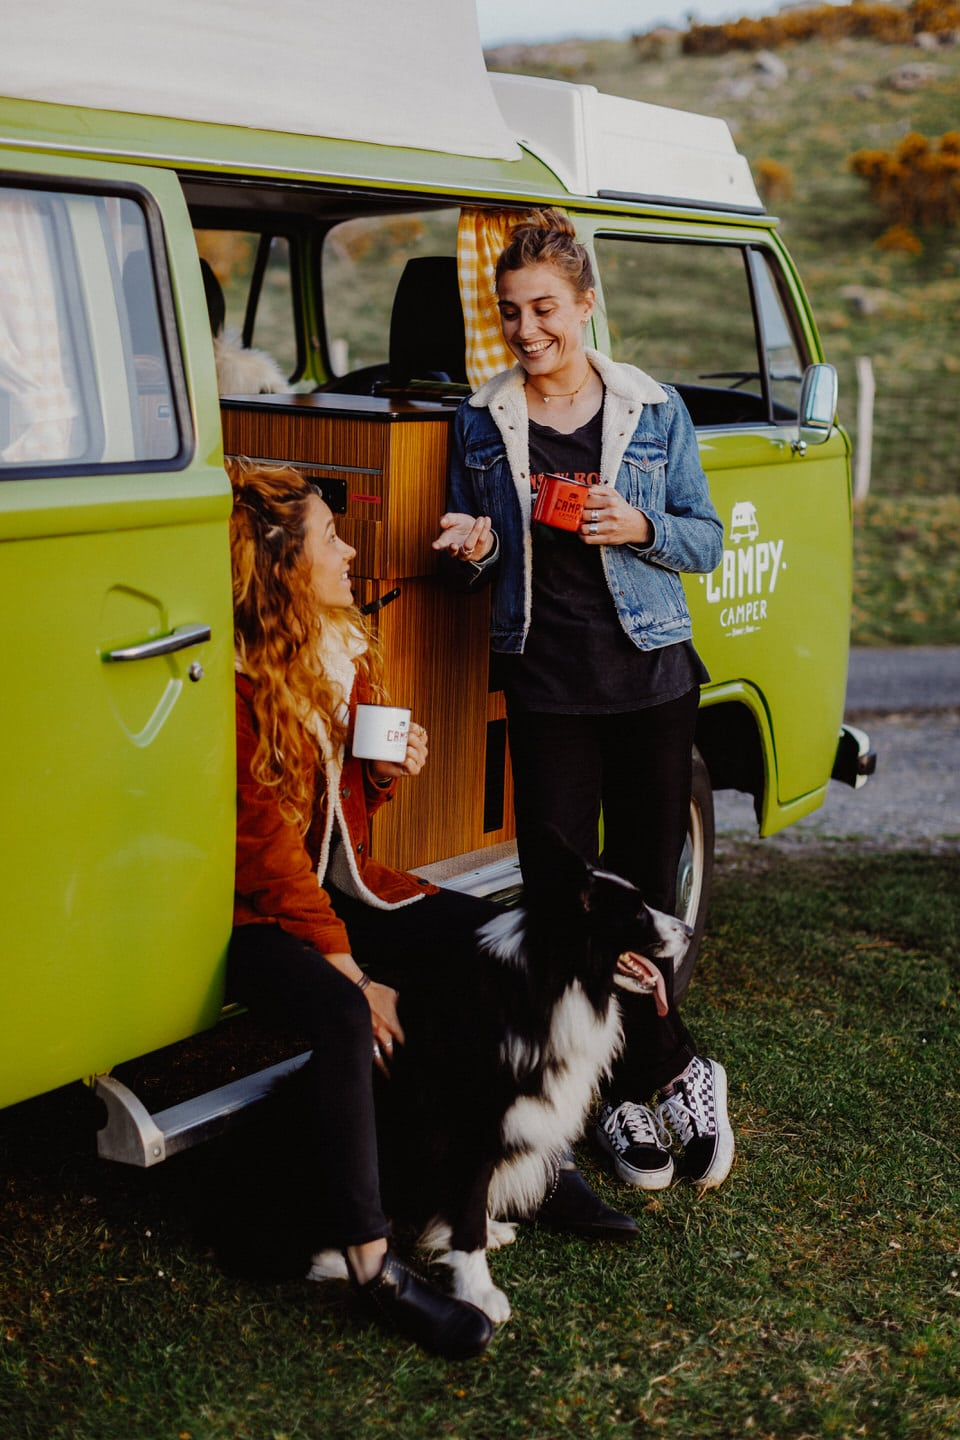 Adventures - Remember Happiness Photographie